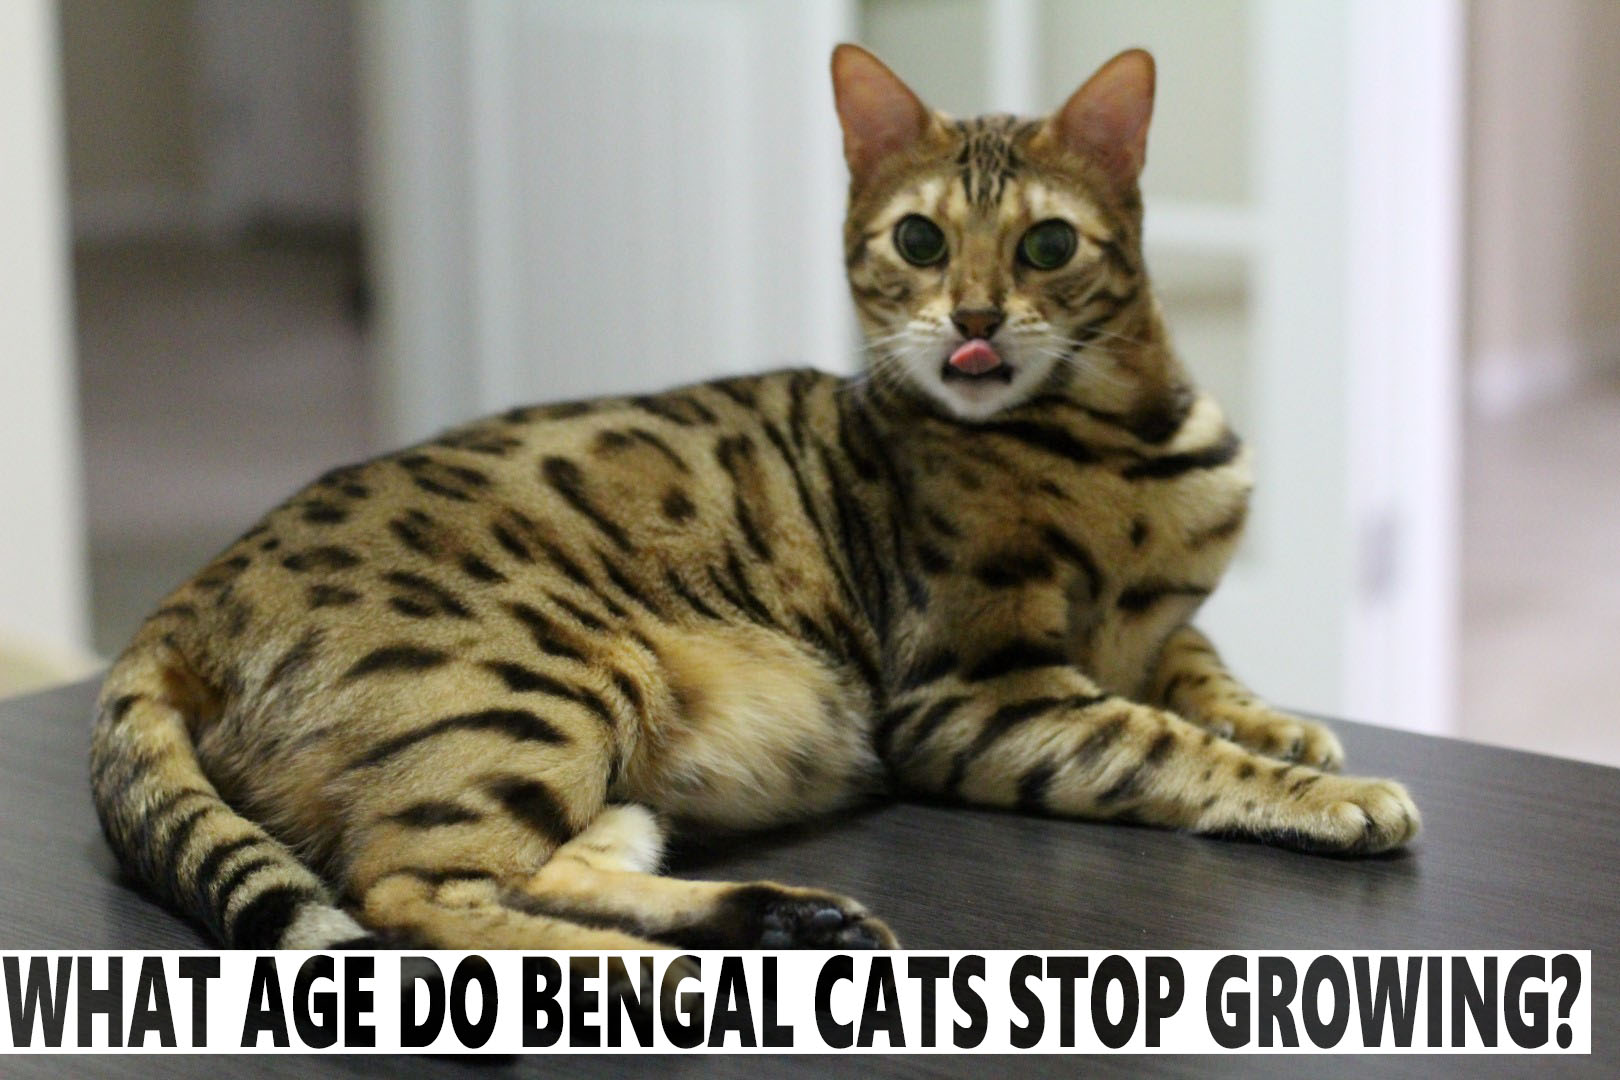 What Age Do Bengal Cats Stop Growing? - BlindBengal